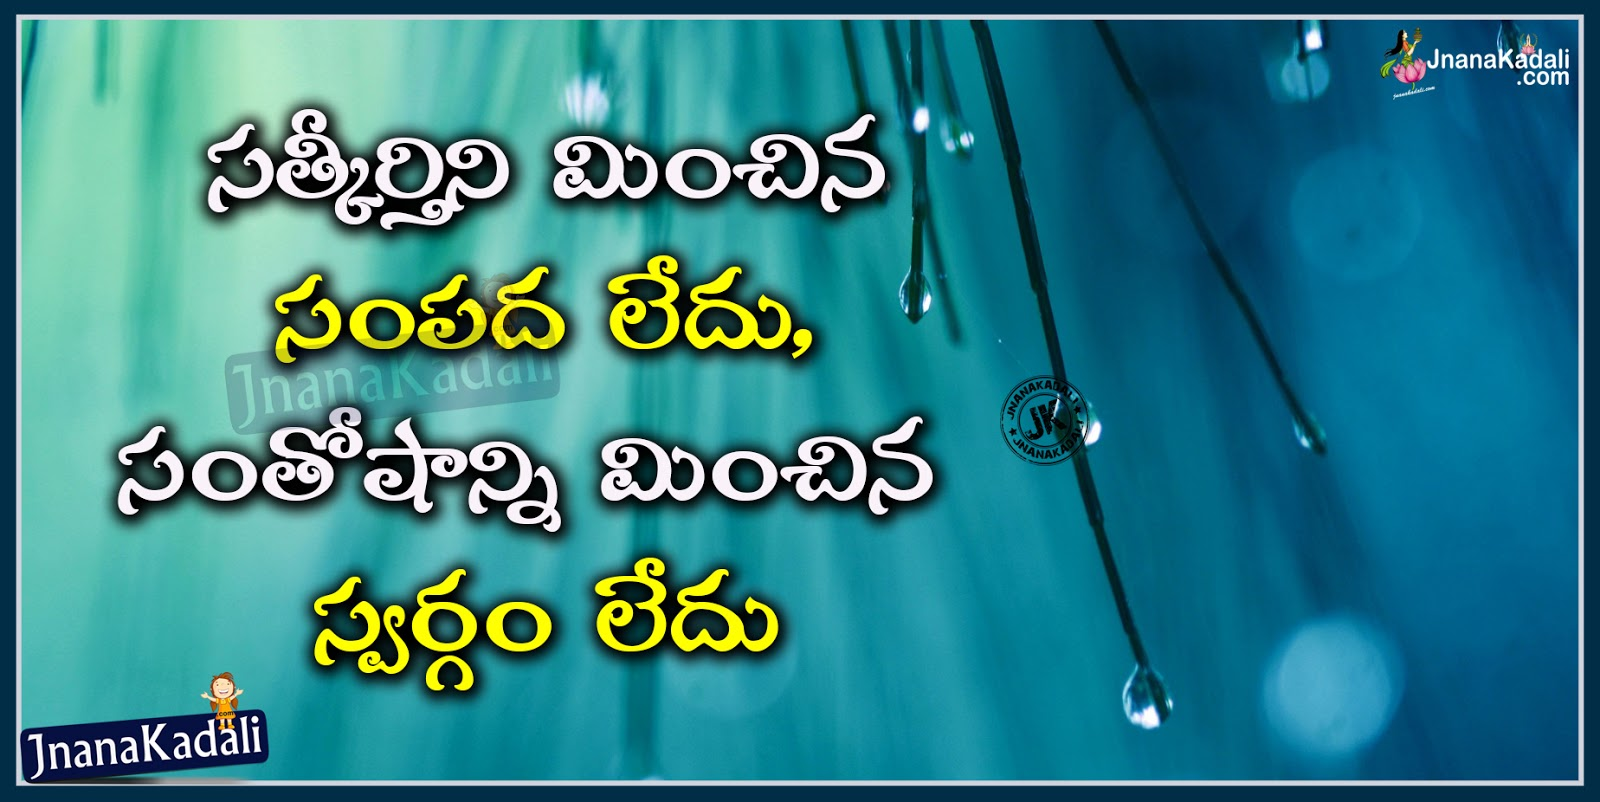 New Telugu Language Life Quotes And Messages, Good Afternoon Motivational  Quotes Messages Images, Telugu